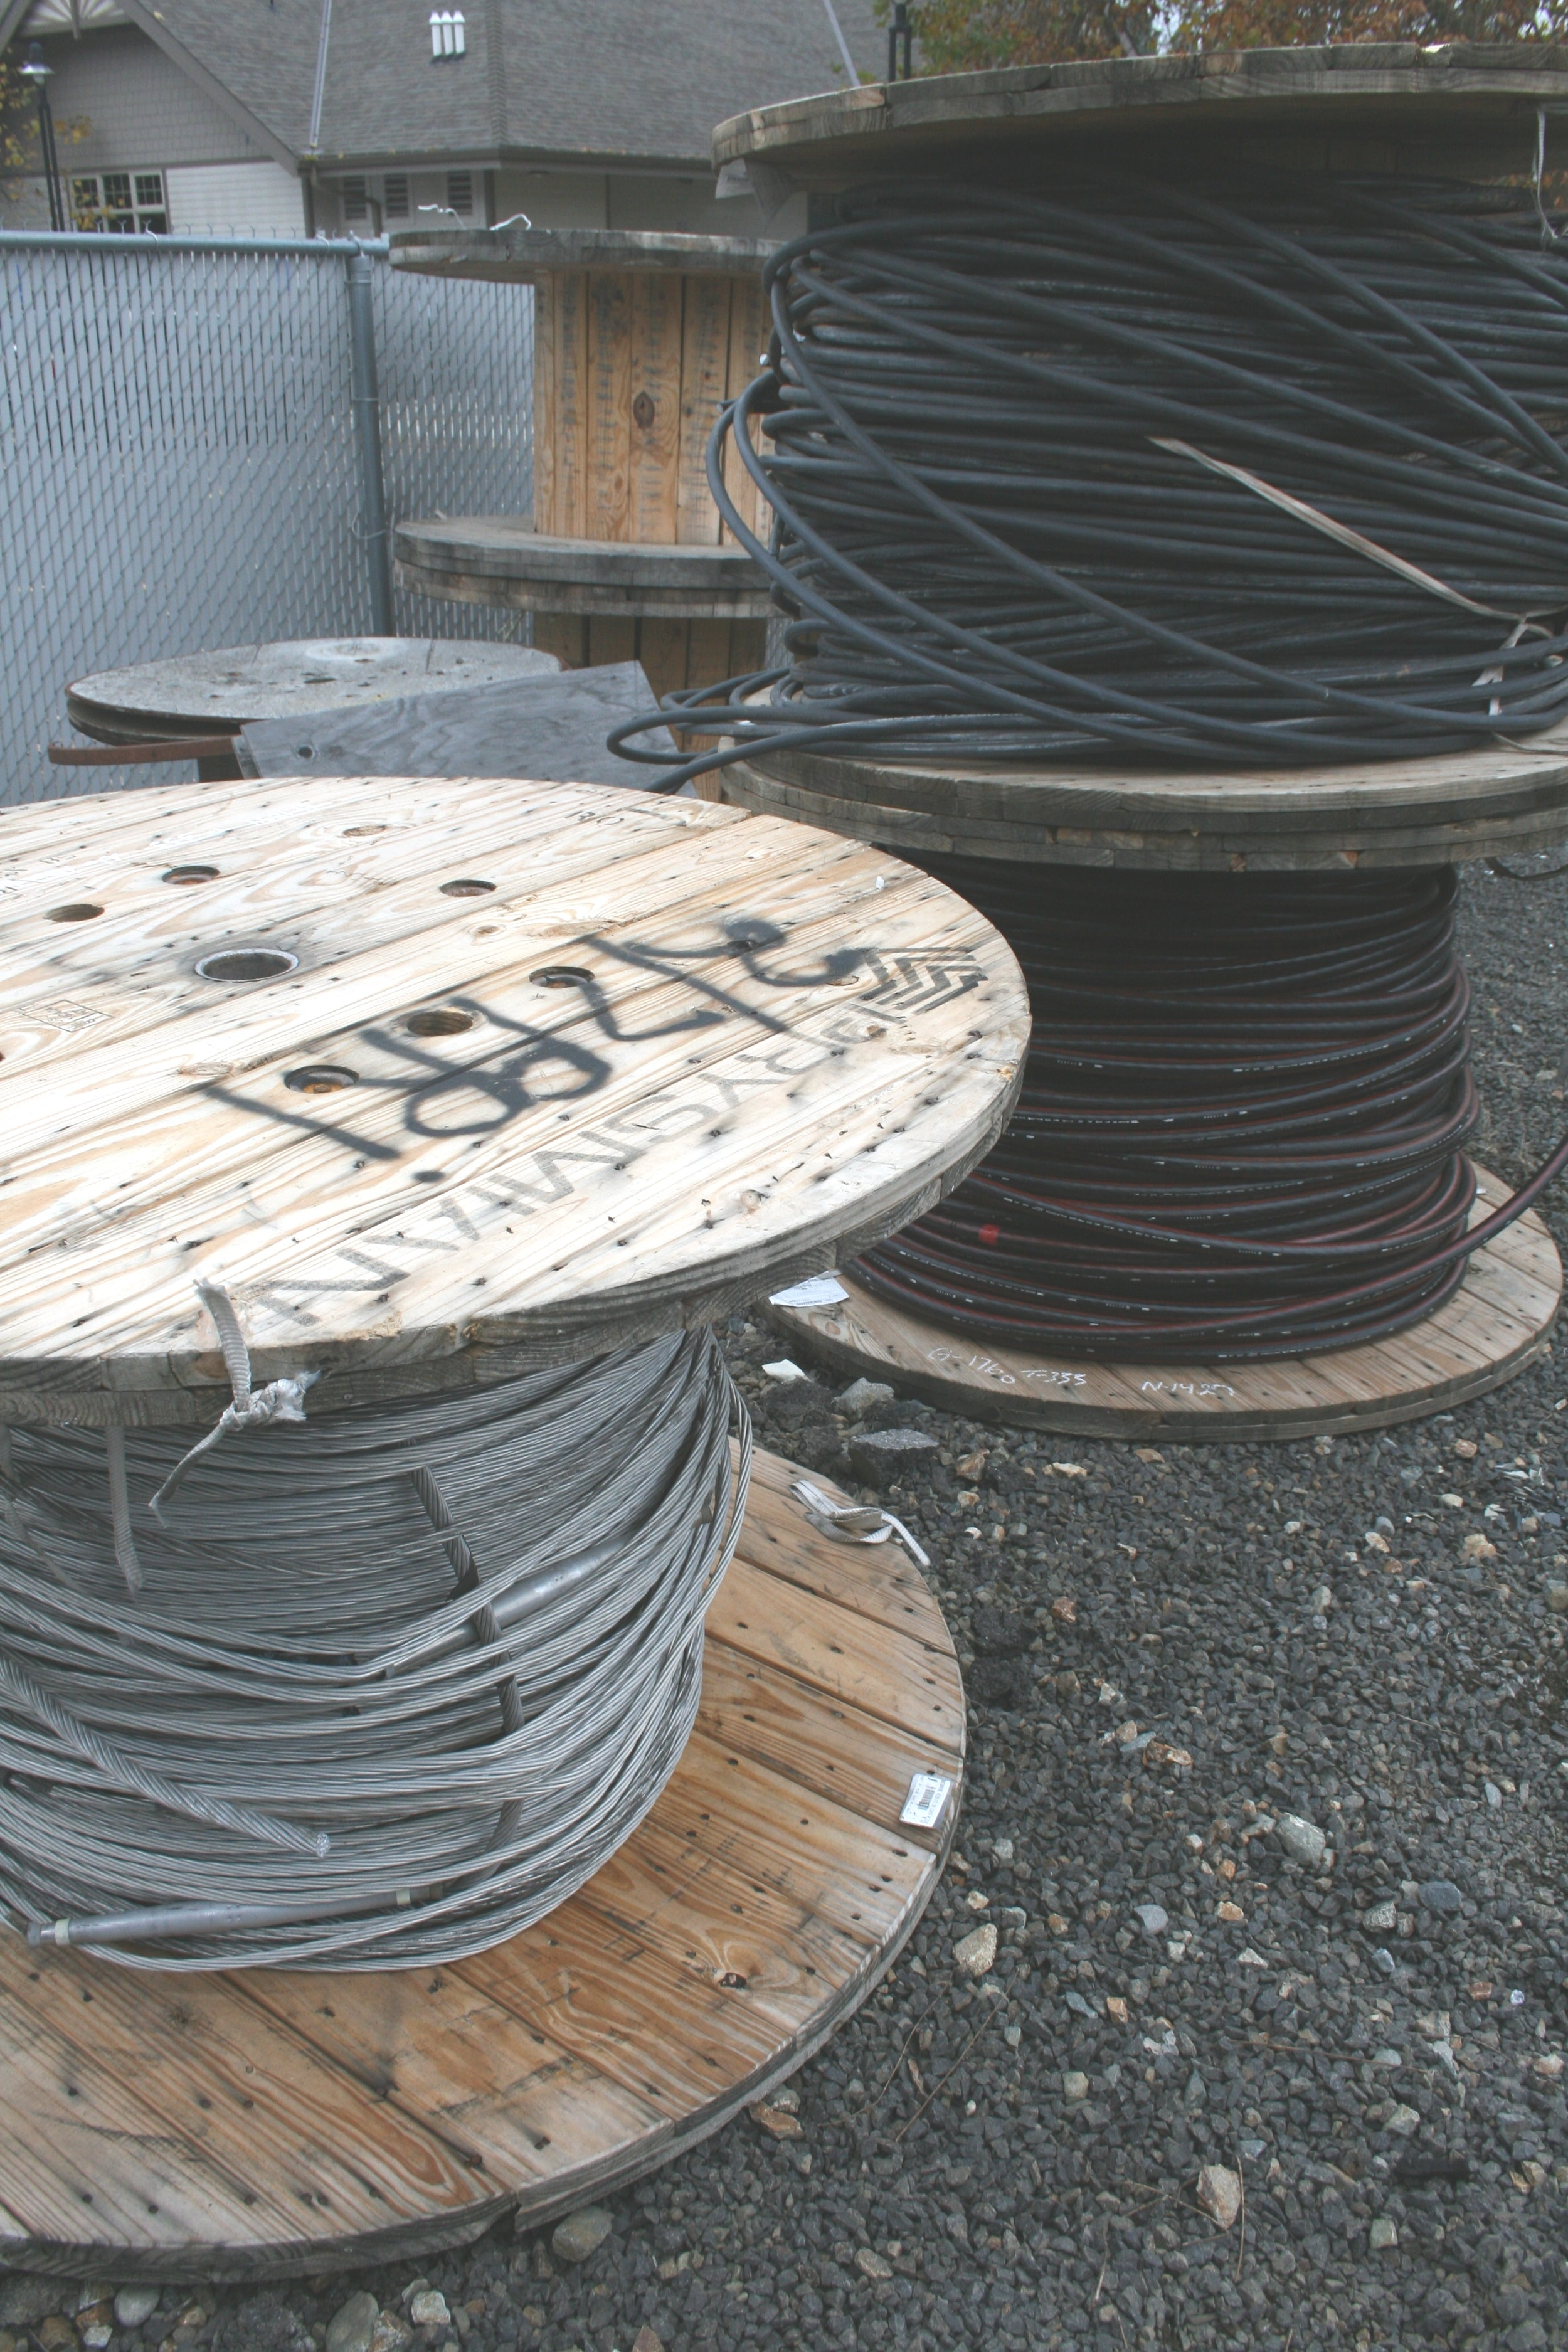 From stripping to separating for aluminum and copper recovery, Sweed's wire and cable processors handle a broad range of ferrous and non-ferrous materials used in this multifaceted industry.